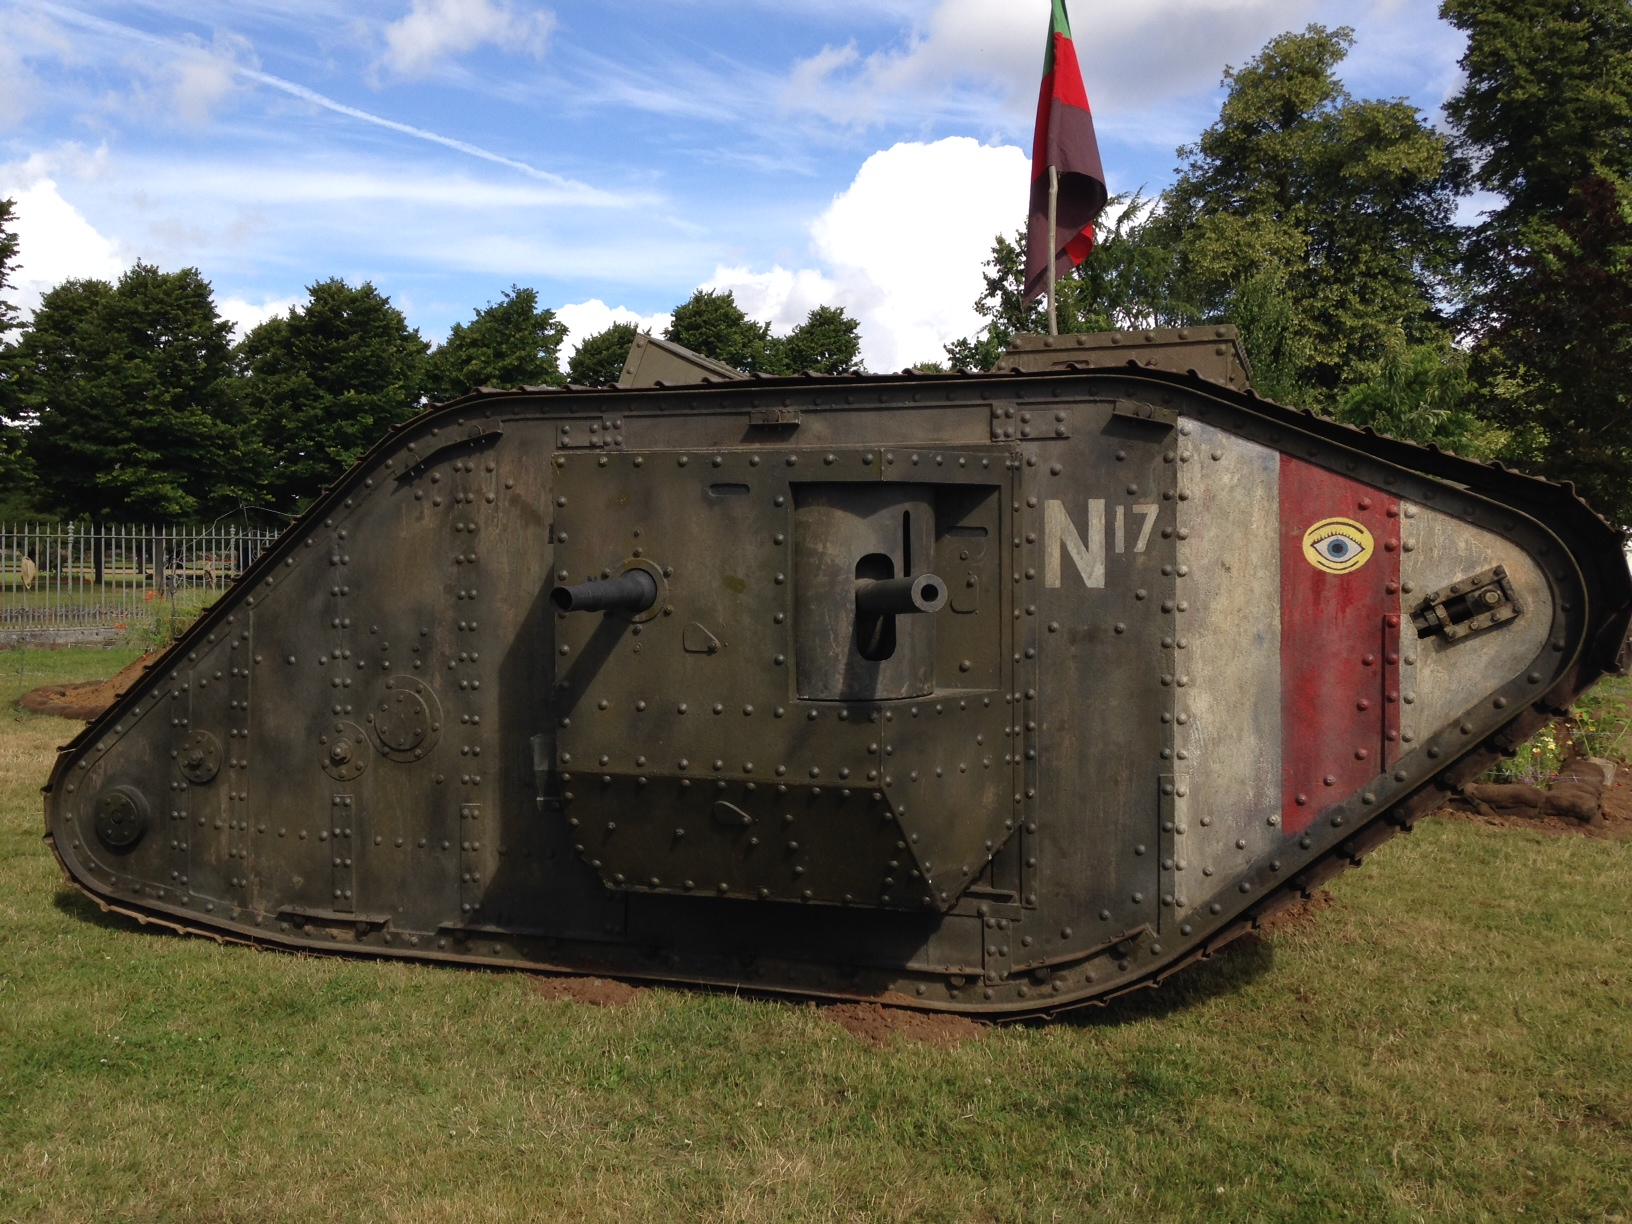 Tank at RHS Hampton court for Lest we Forget Memorial